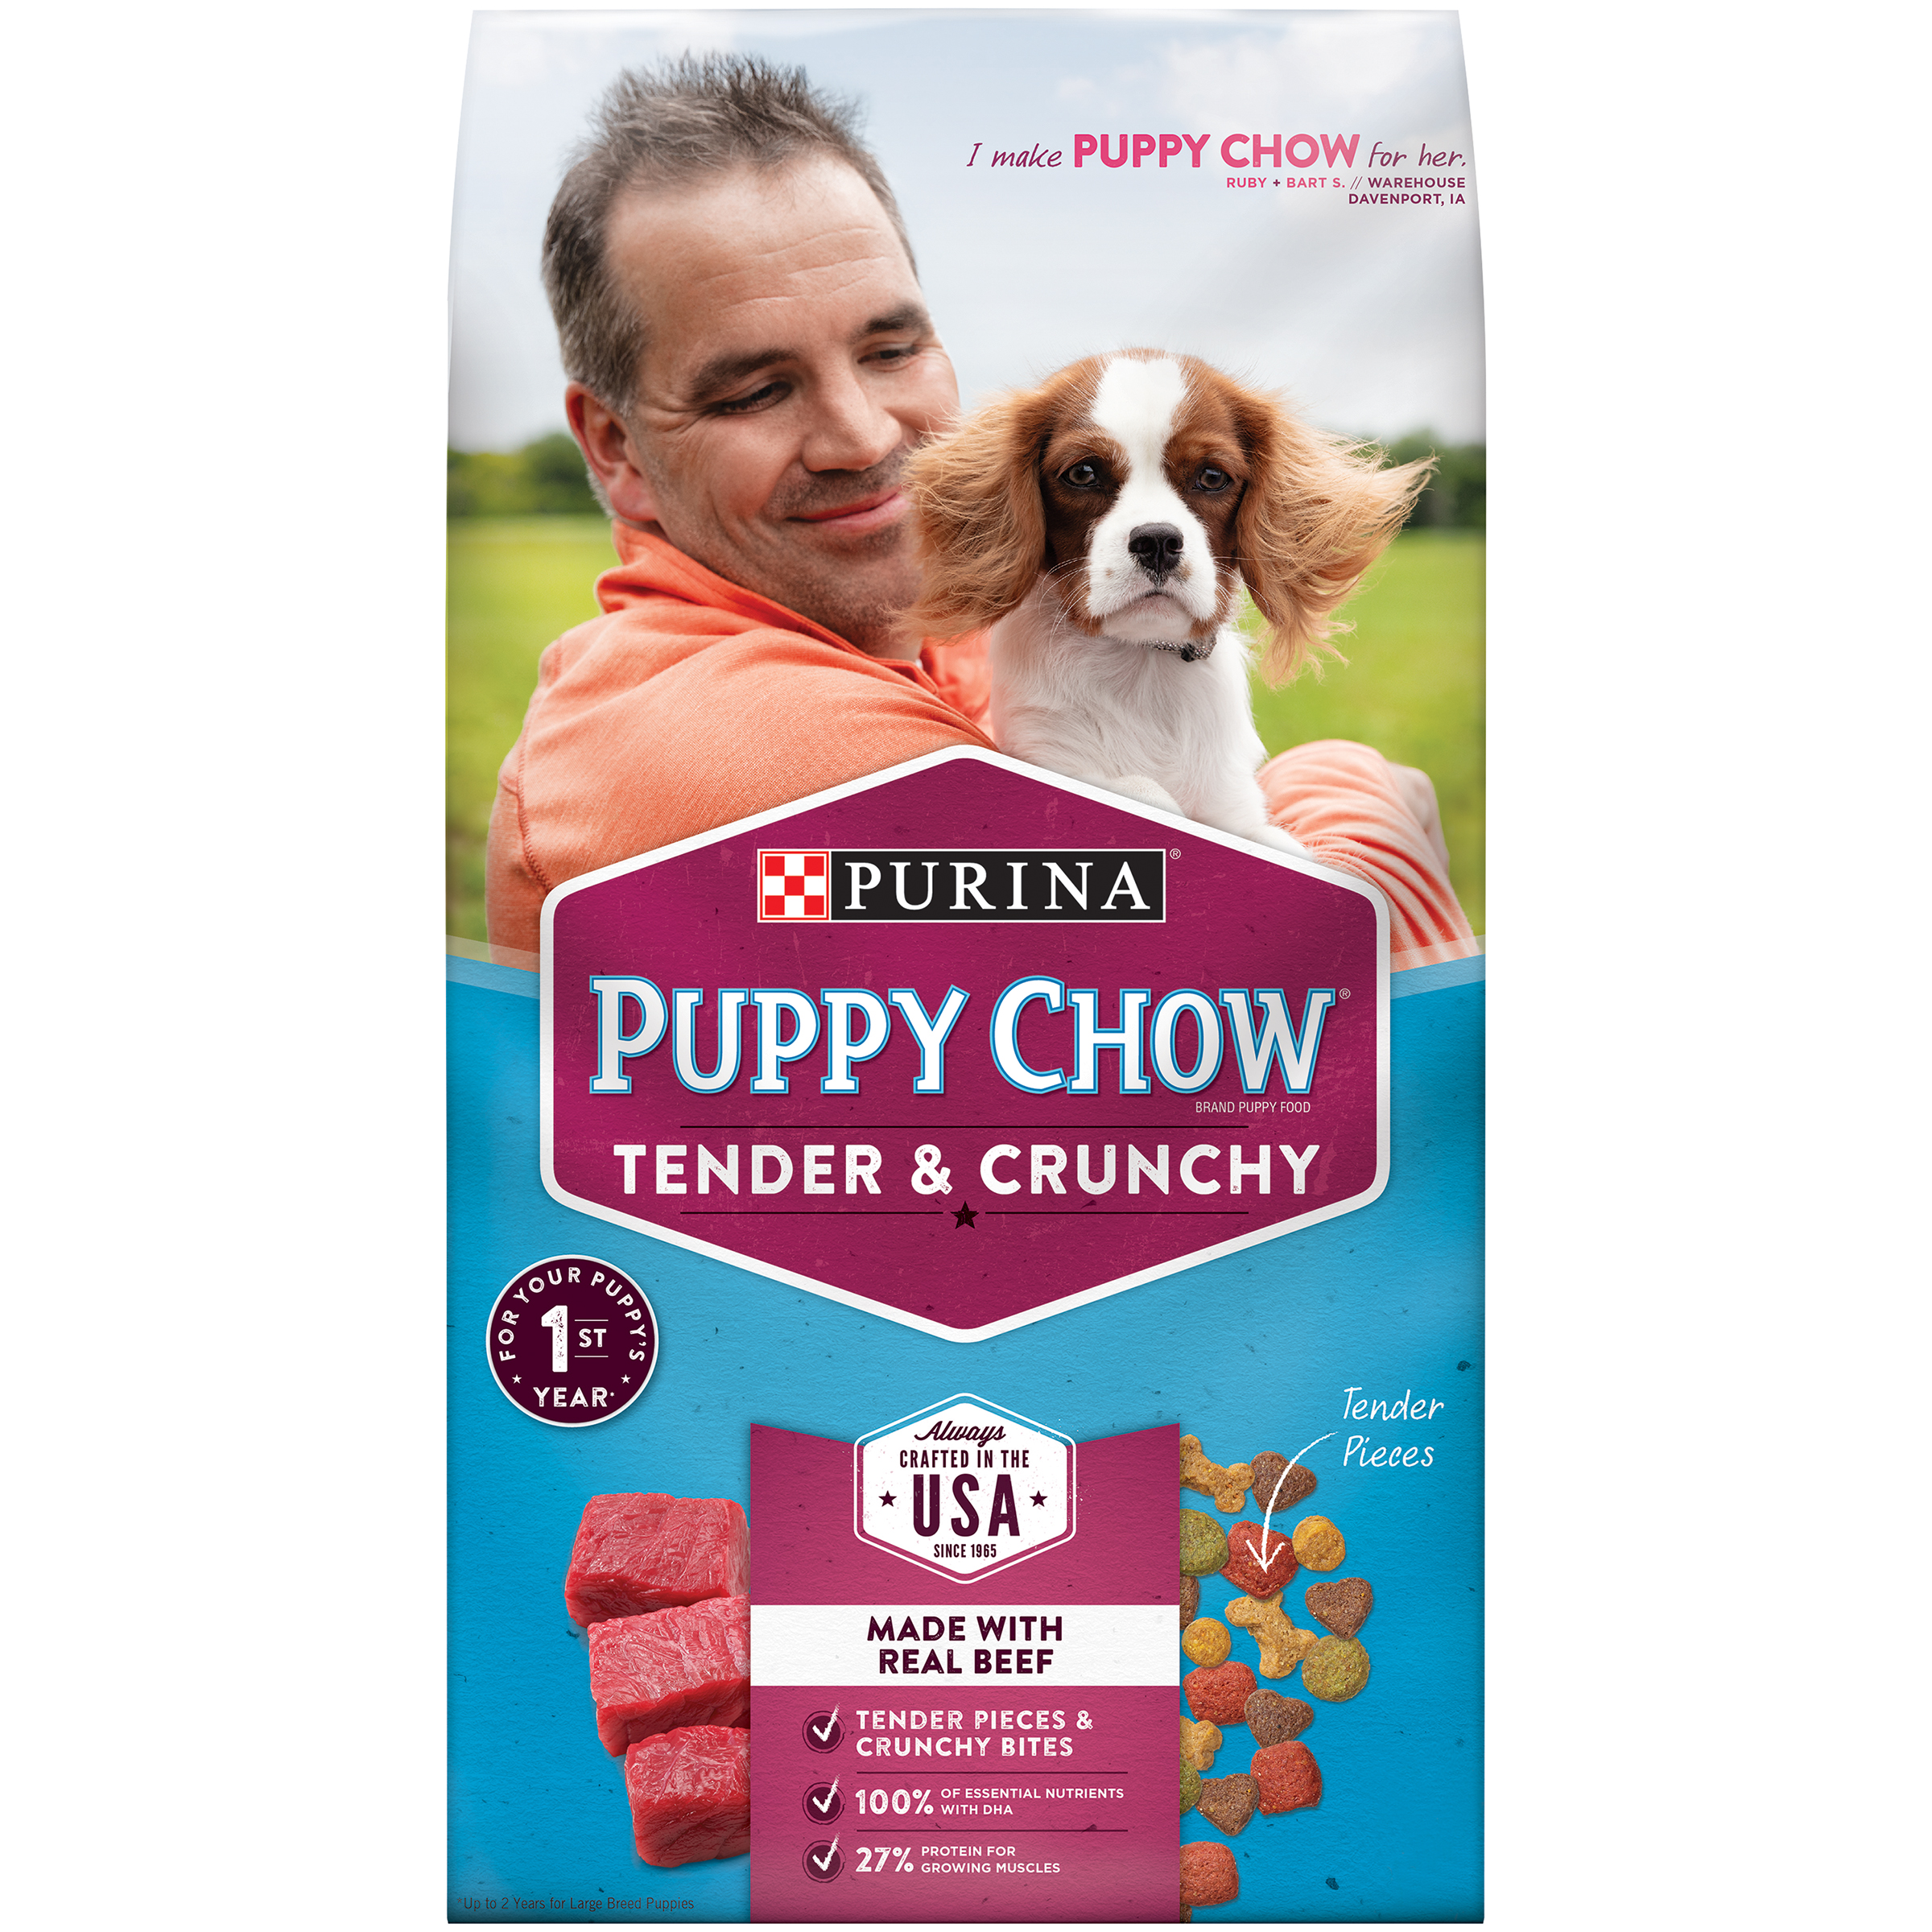 Purina Puppy Chow Tender & Crunchy Dry Puppy Food 4.4 lb. Bag by Nestle Purina Petcare Company